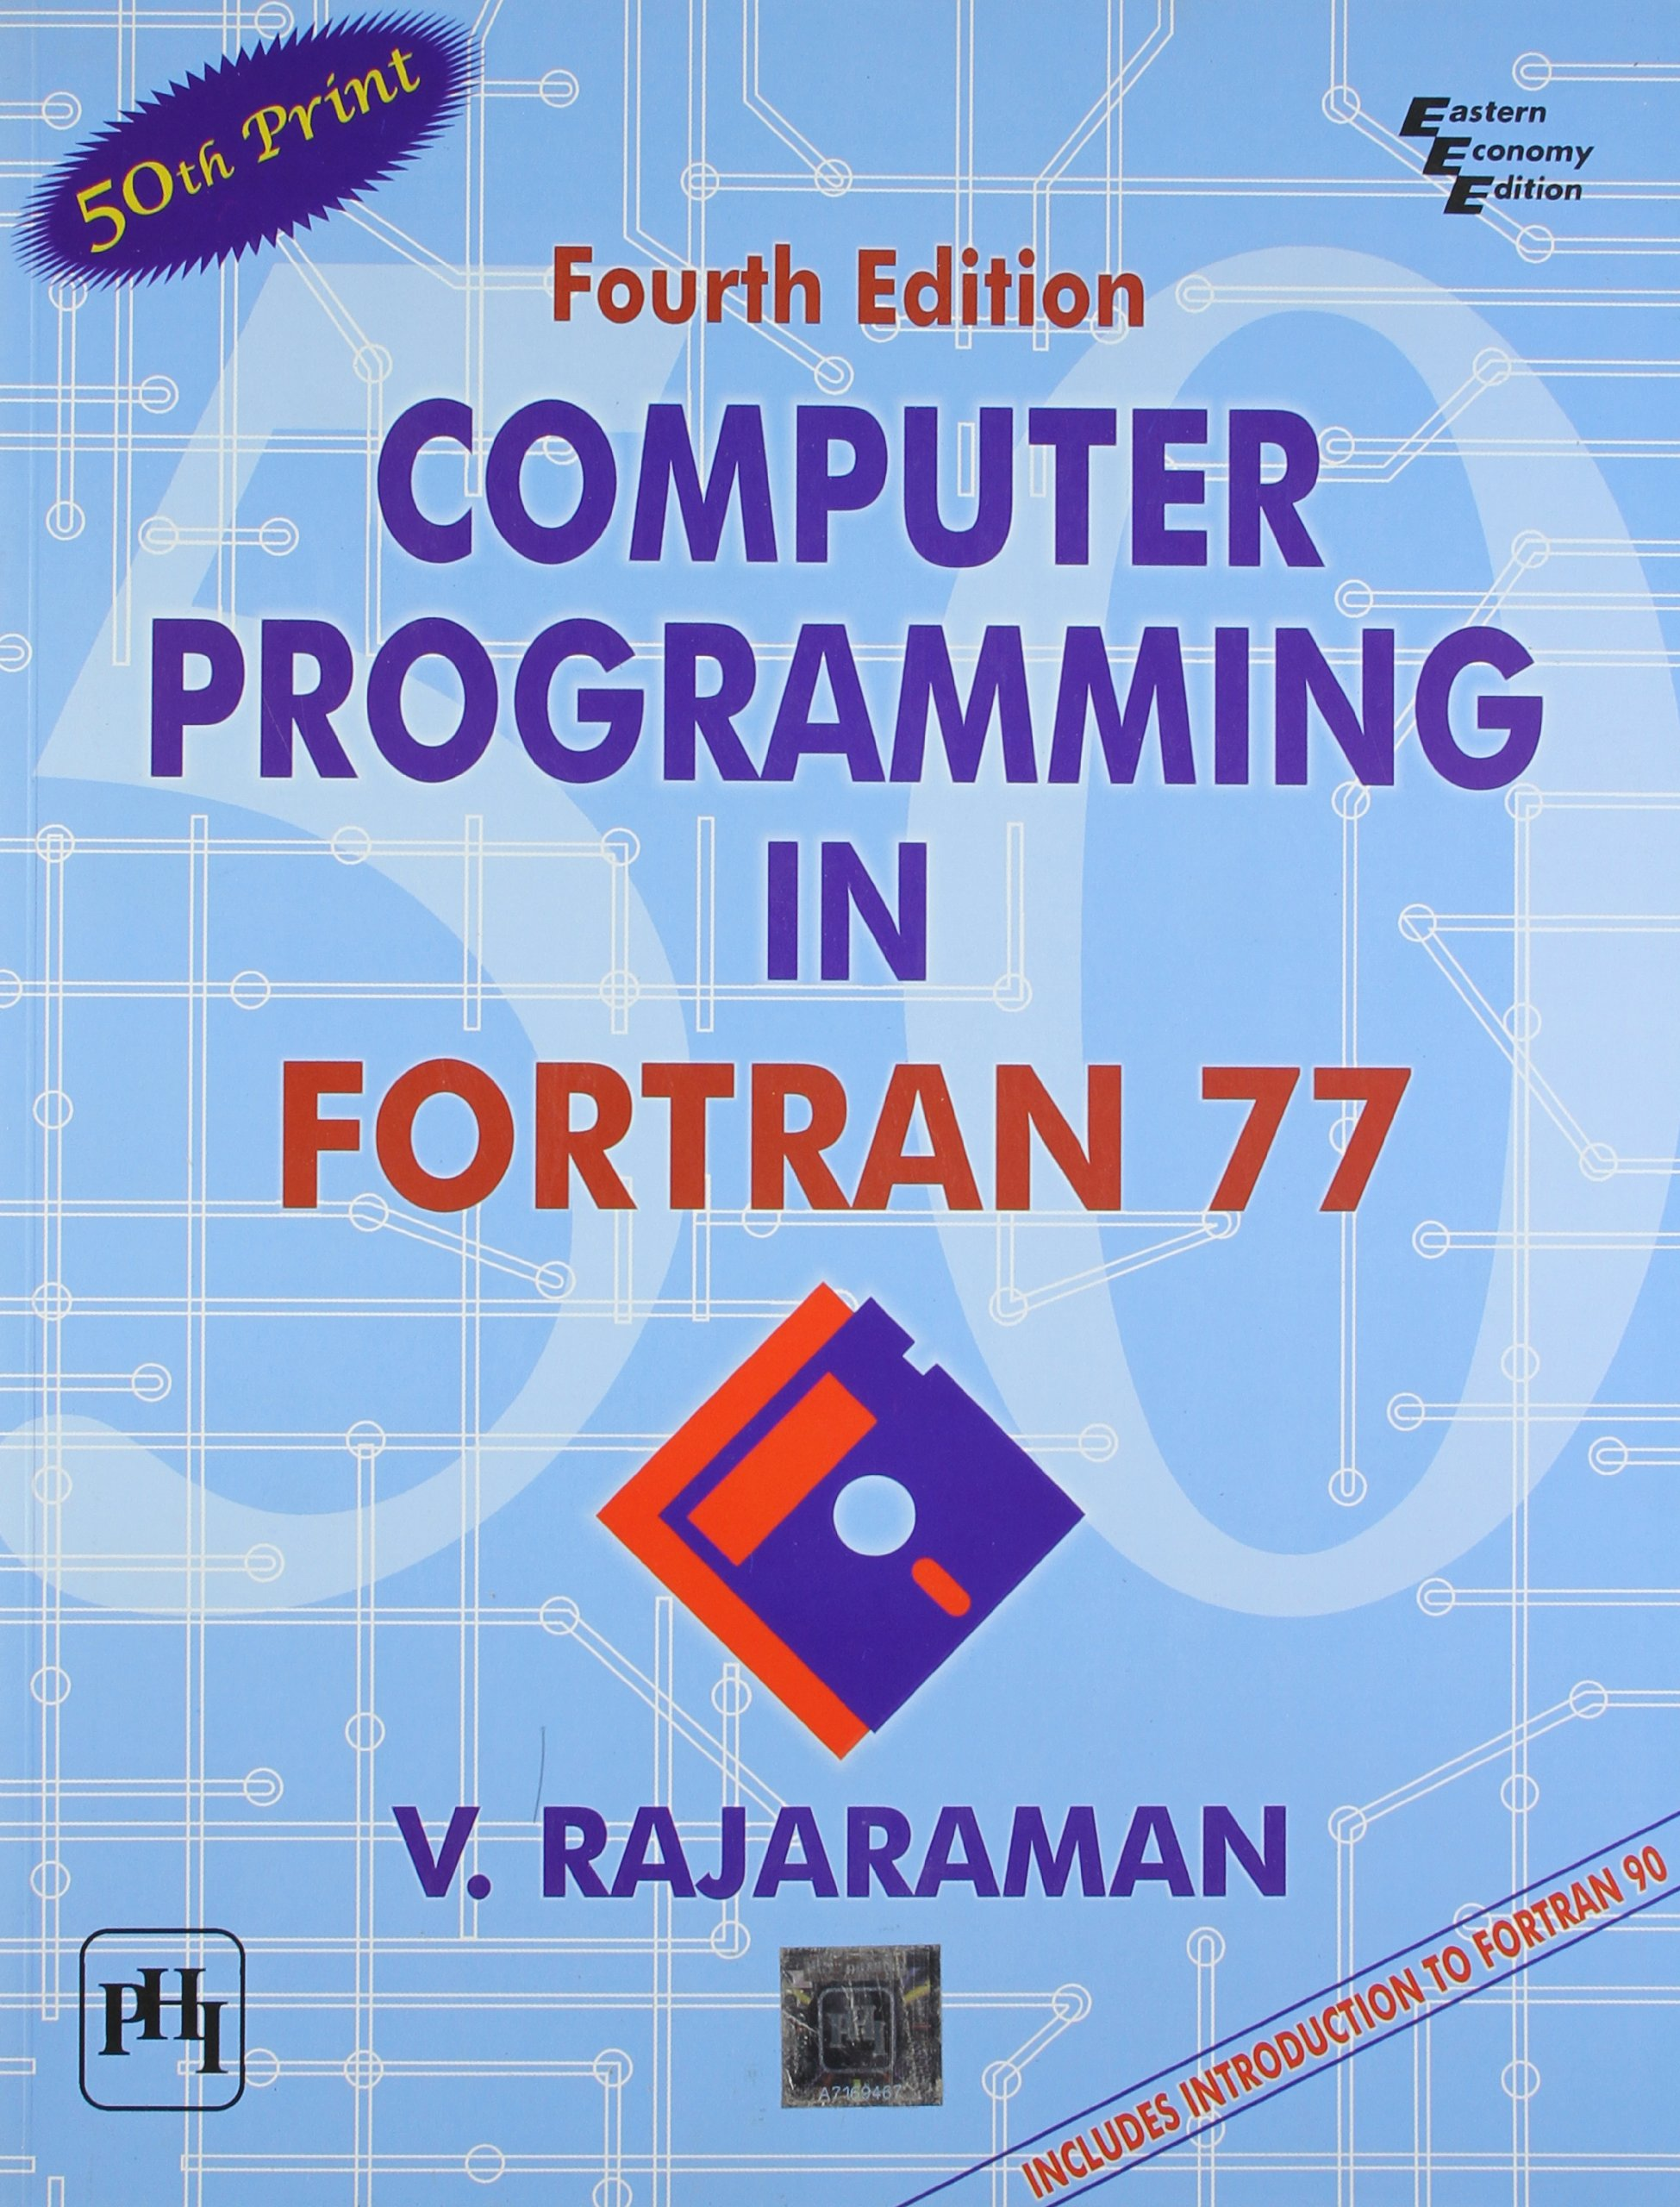 Computer programming in fortran 77: an introduction to fortran 90.